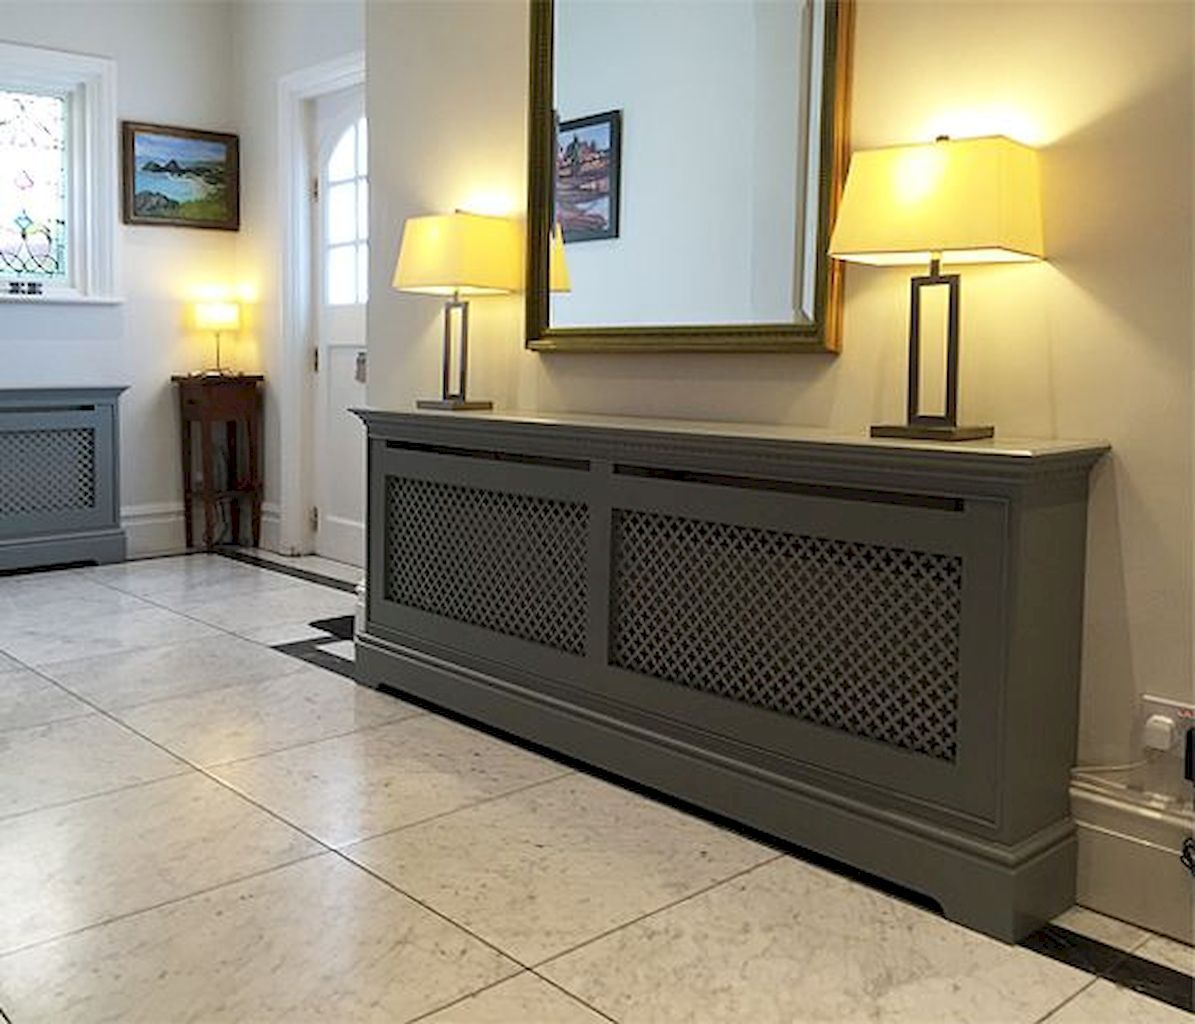 Sumptuous Give Your Dwelling A Fashionable Make Over On A Price Range With A Designer Radiato Radiators Modern Radiator Cover Home Radiators